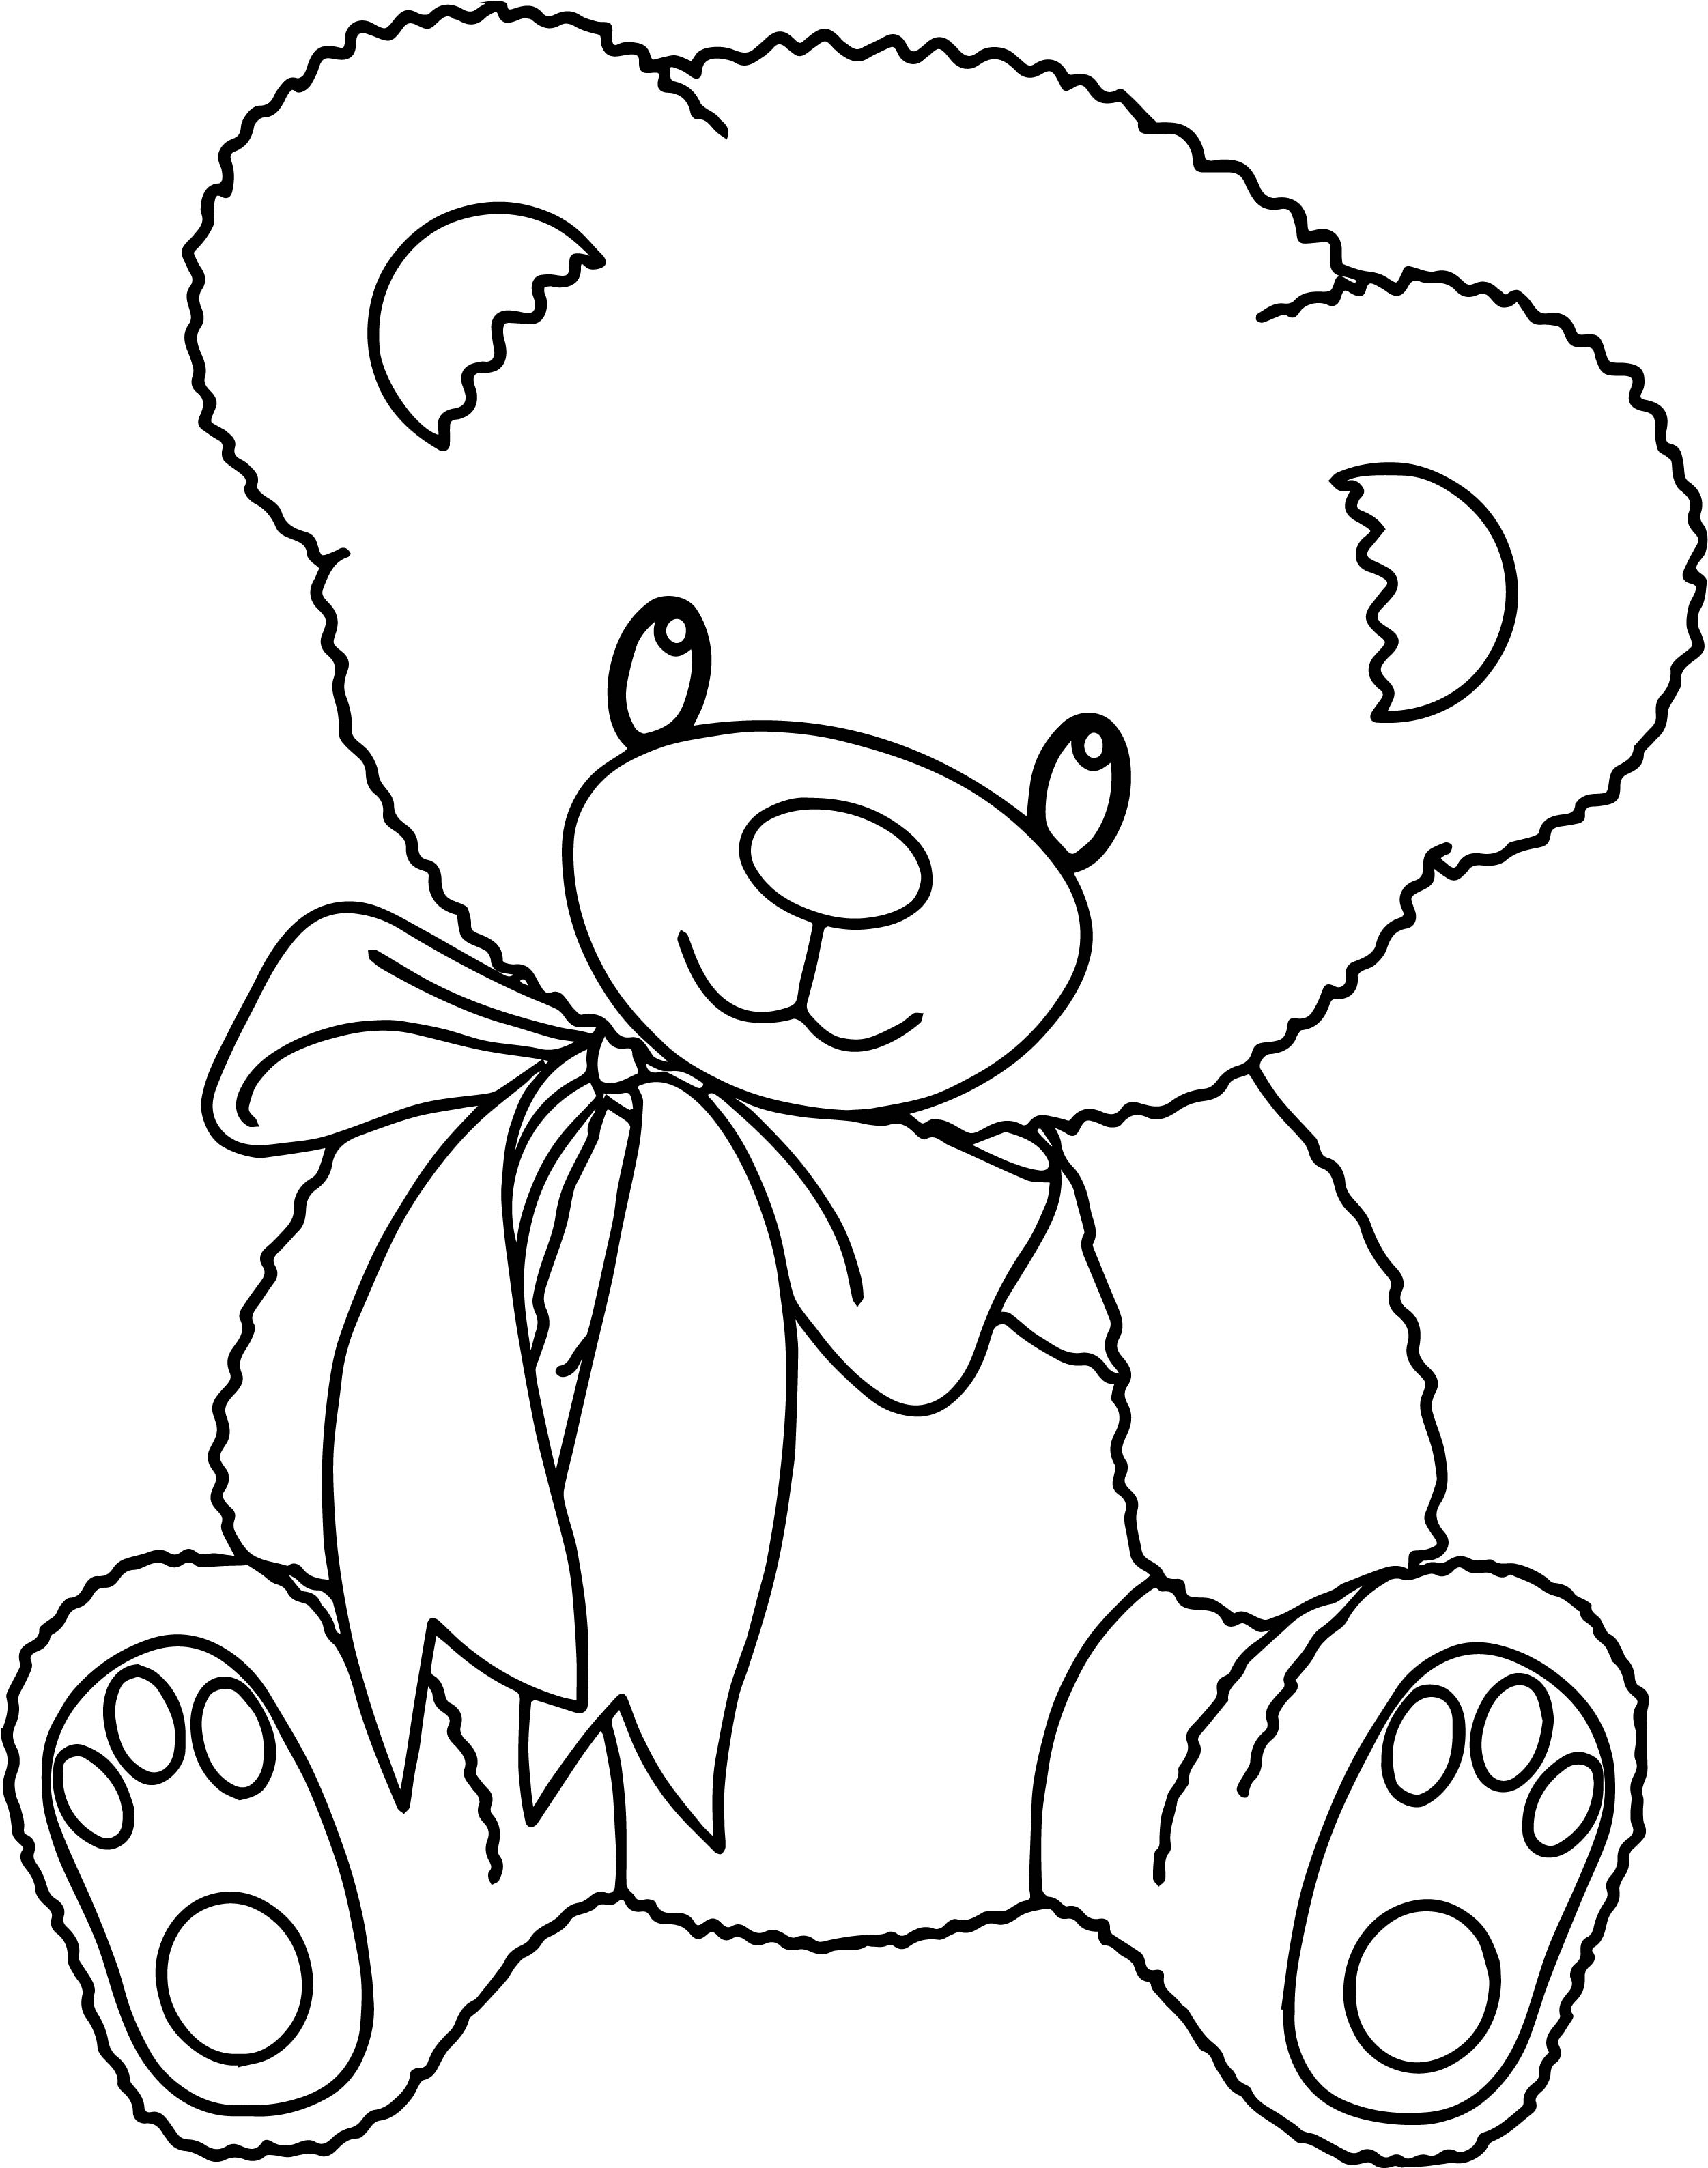 Bear Toy Family Coloring Page